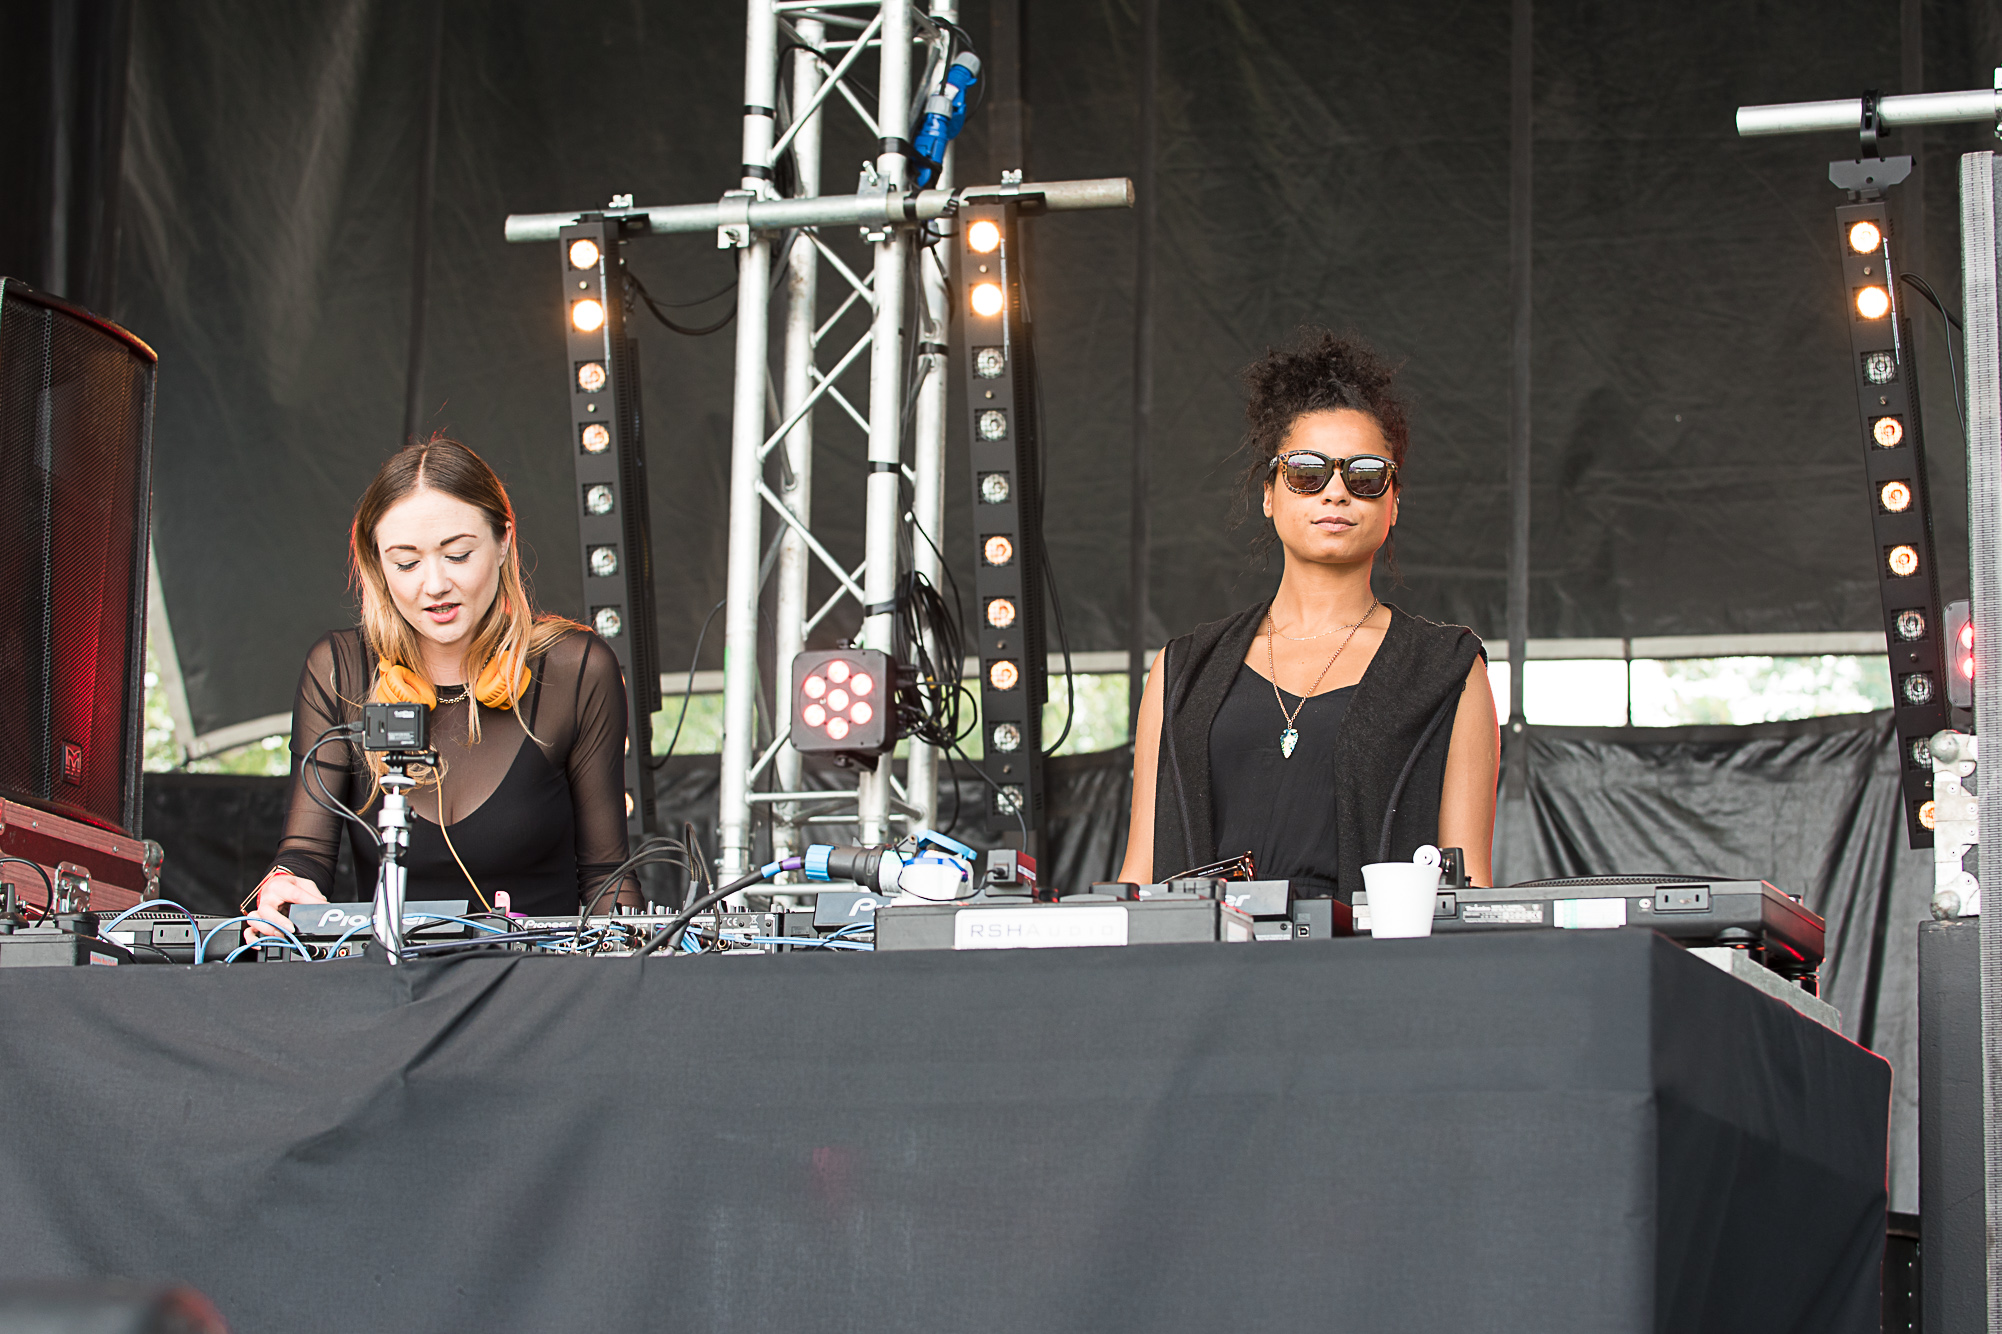 Lily Mercer plays at the Rinse   Born & Bred festival 2016